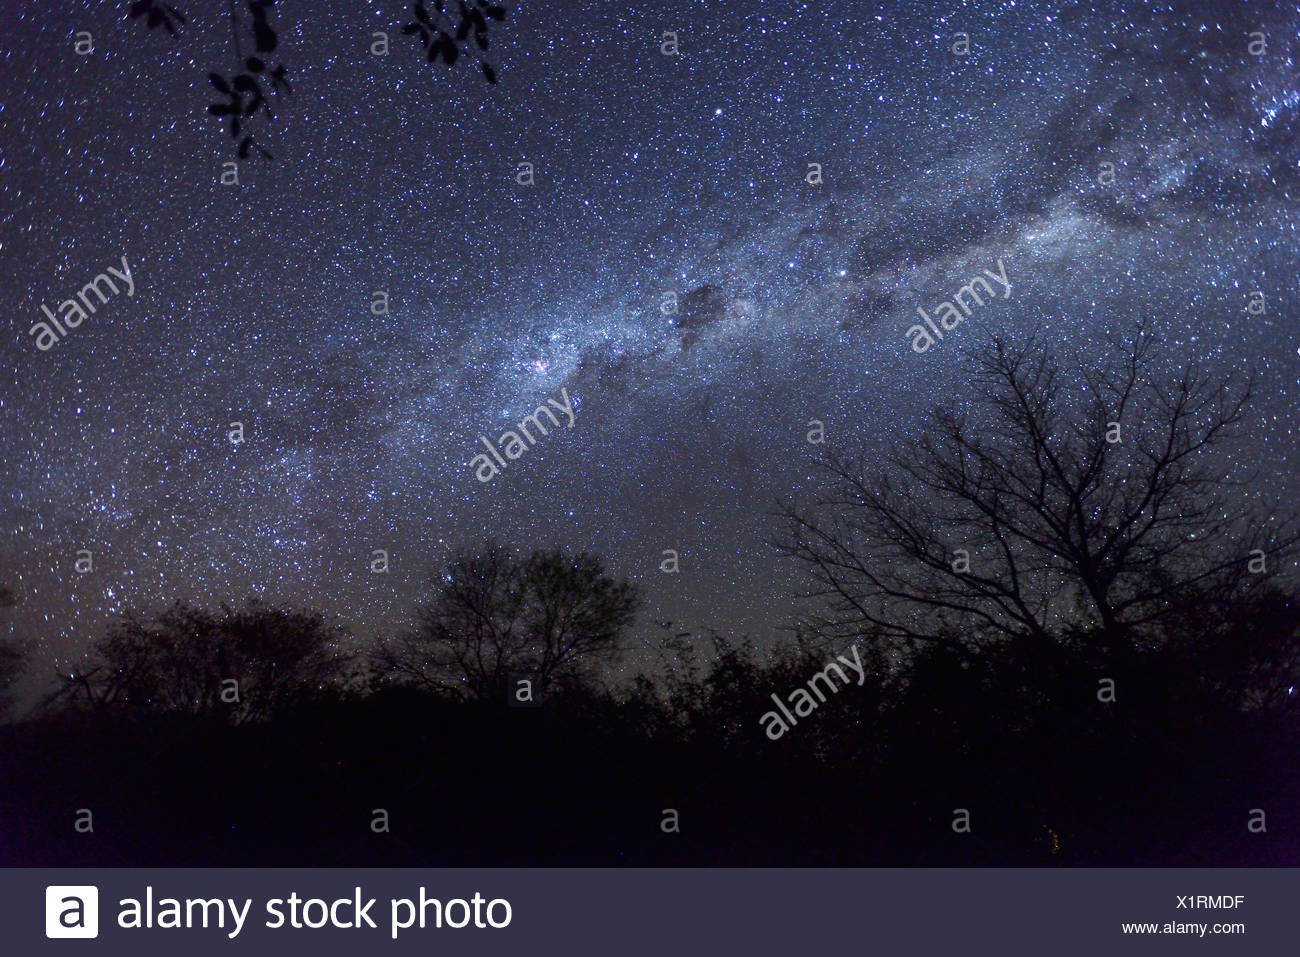 Africa, Southern, Namibiai, night, sky, stars, astro, photography, spangled sky, starlit, Grootfontein - Stock Image